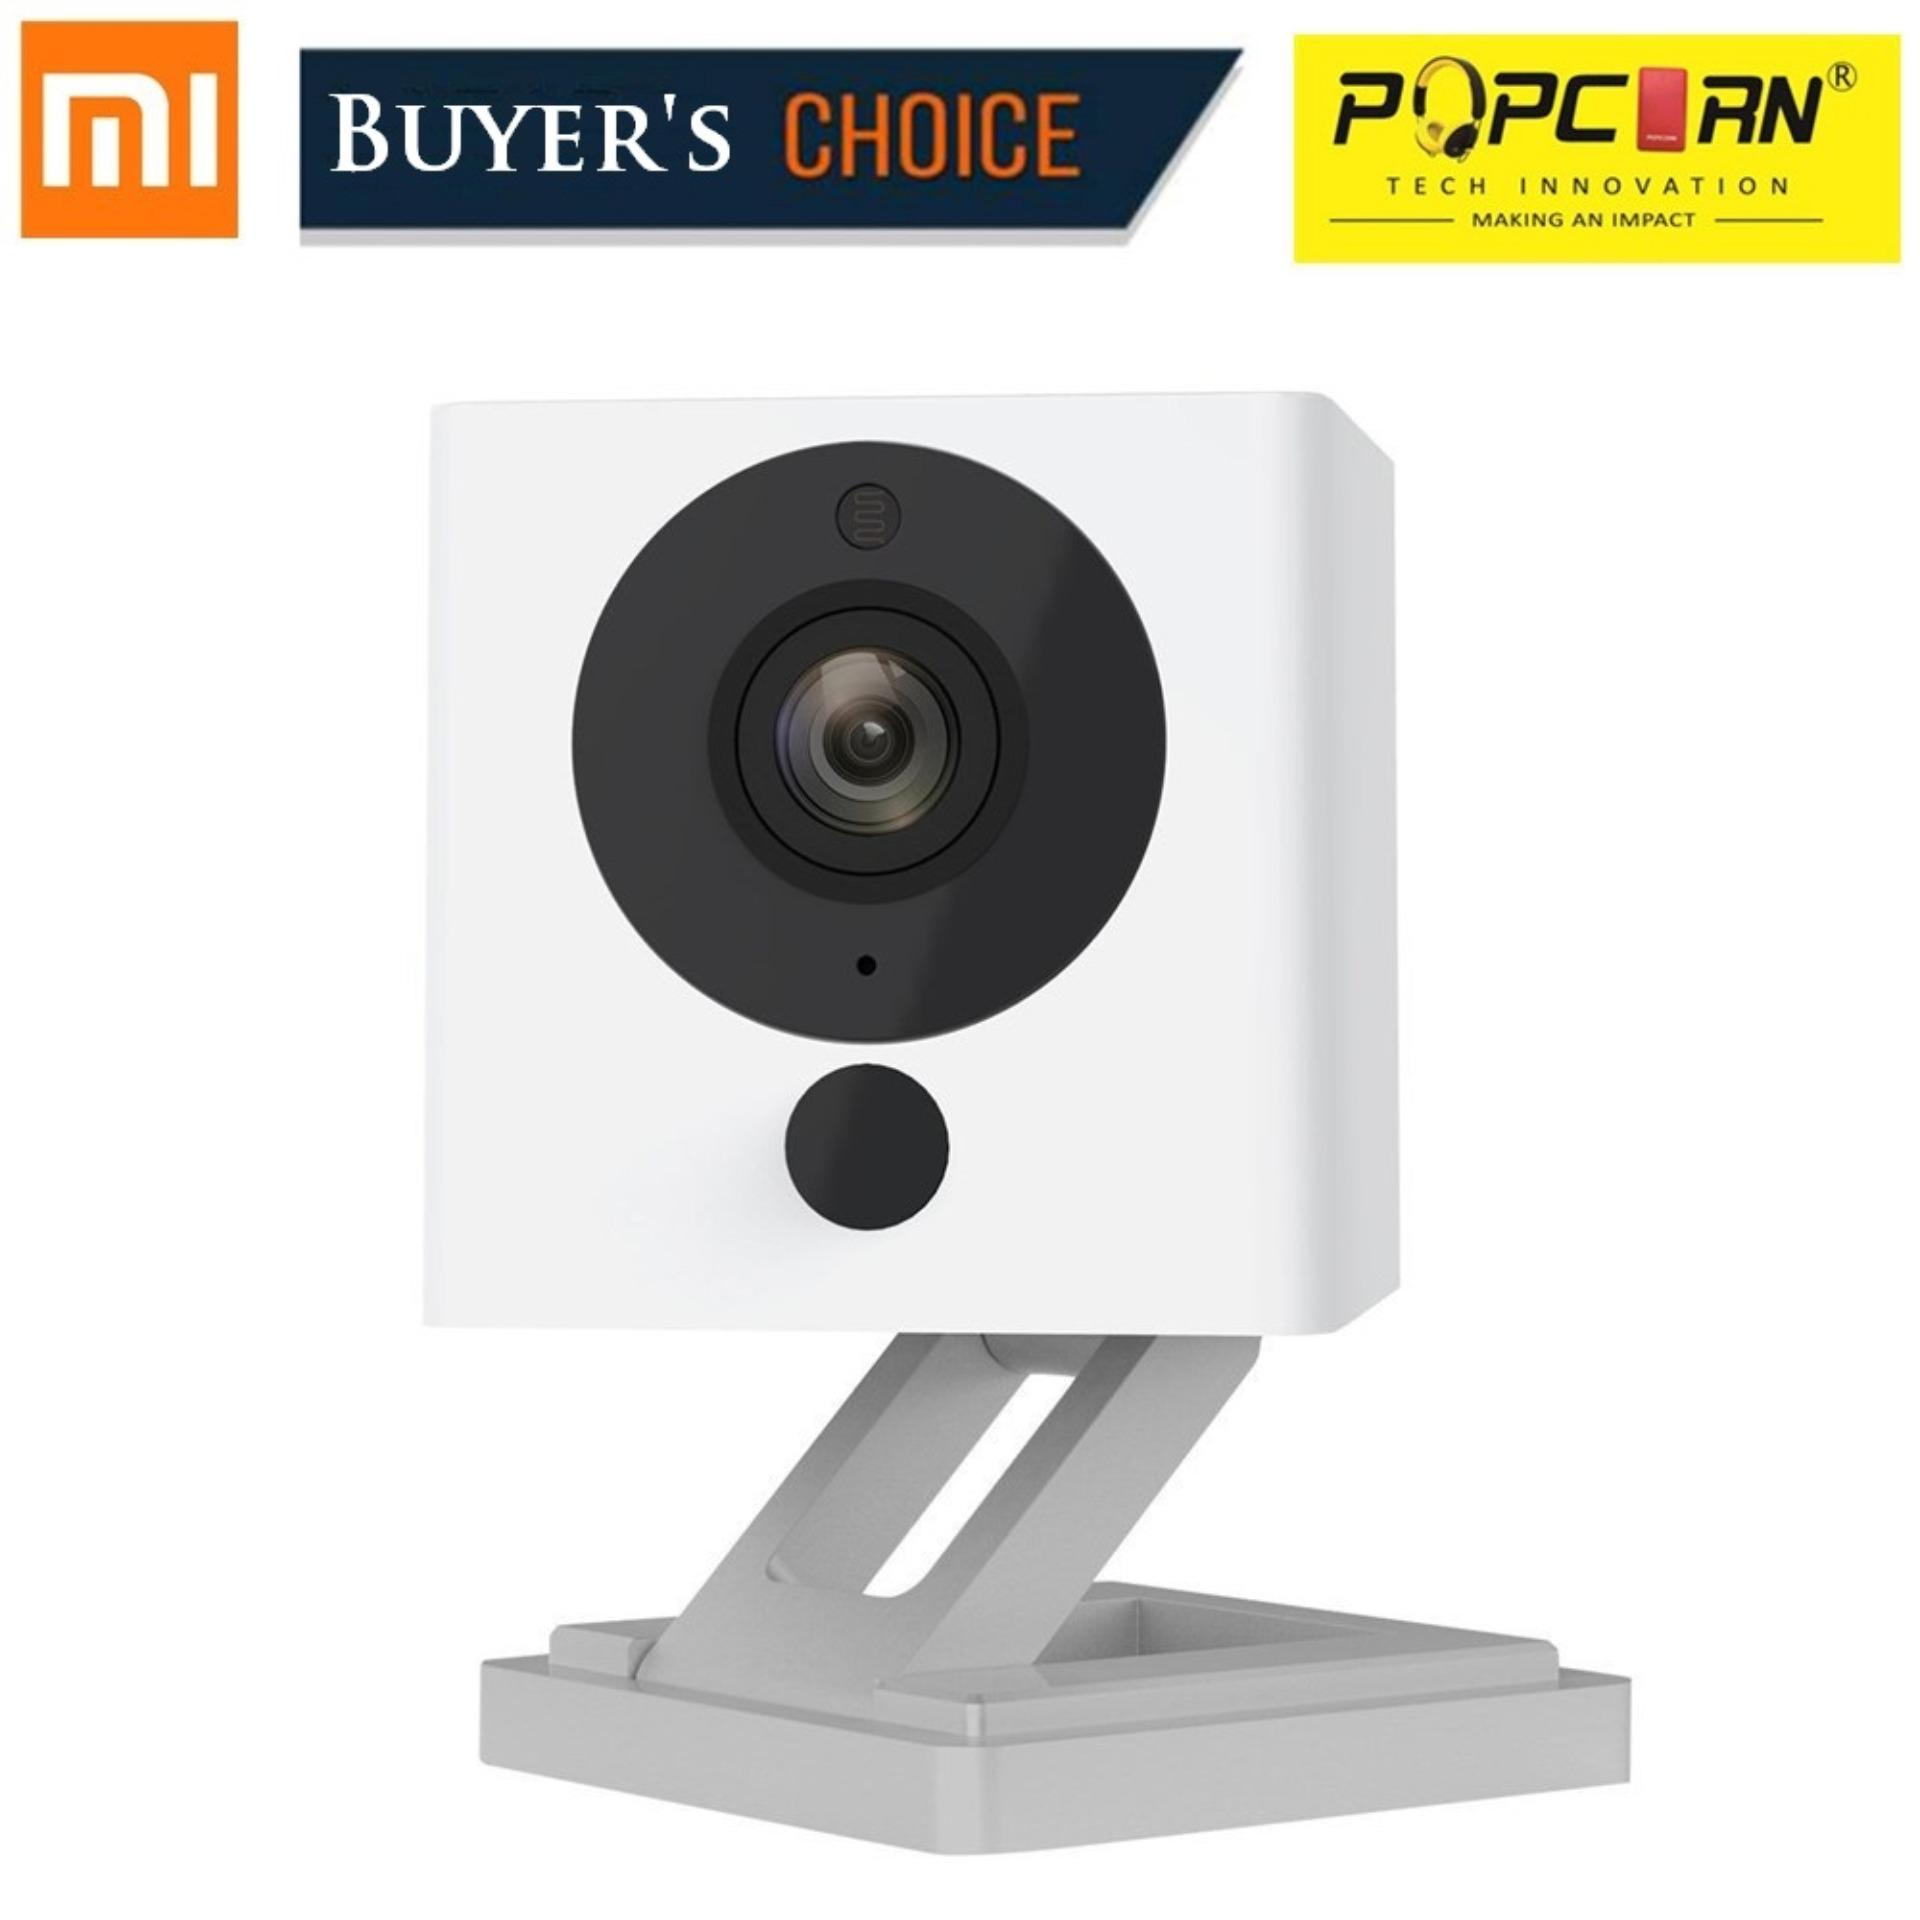 Security Camera For Sale Surveillance Prices Brands Channel Remote View Mobile Dvr With Shock Sensor And Wifi Antenna Xiaomi Mi Xiaofang Xiao Fang Ip Cam Night Vision Wireless Network Hd Monitor